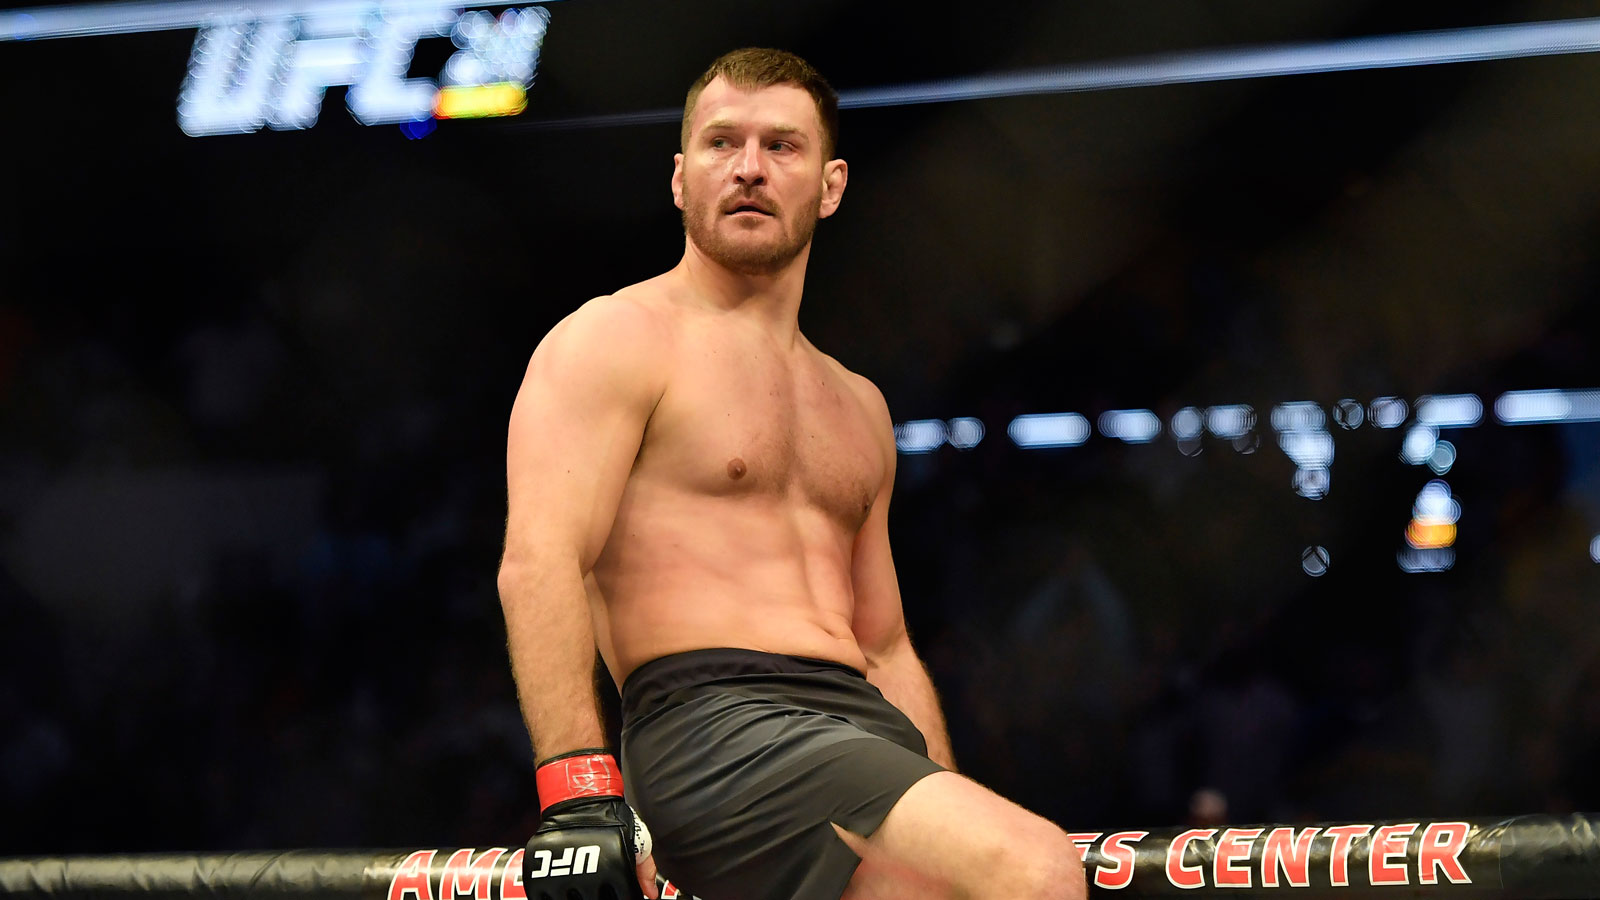 May 13, 2017; Dallas, TX, USA; Stipe Miocic (red gloves) looks on to the octagon after he defeats Junior Dos Santos (blue gloves) during UFC 211 at American Airlines Center. Mandatory Credit: Jerome Miron-USA TODAY Sports